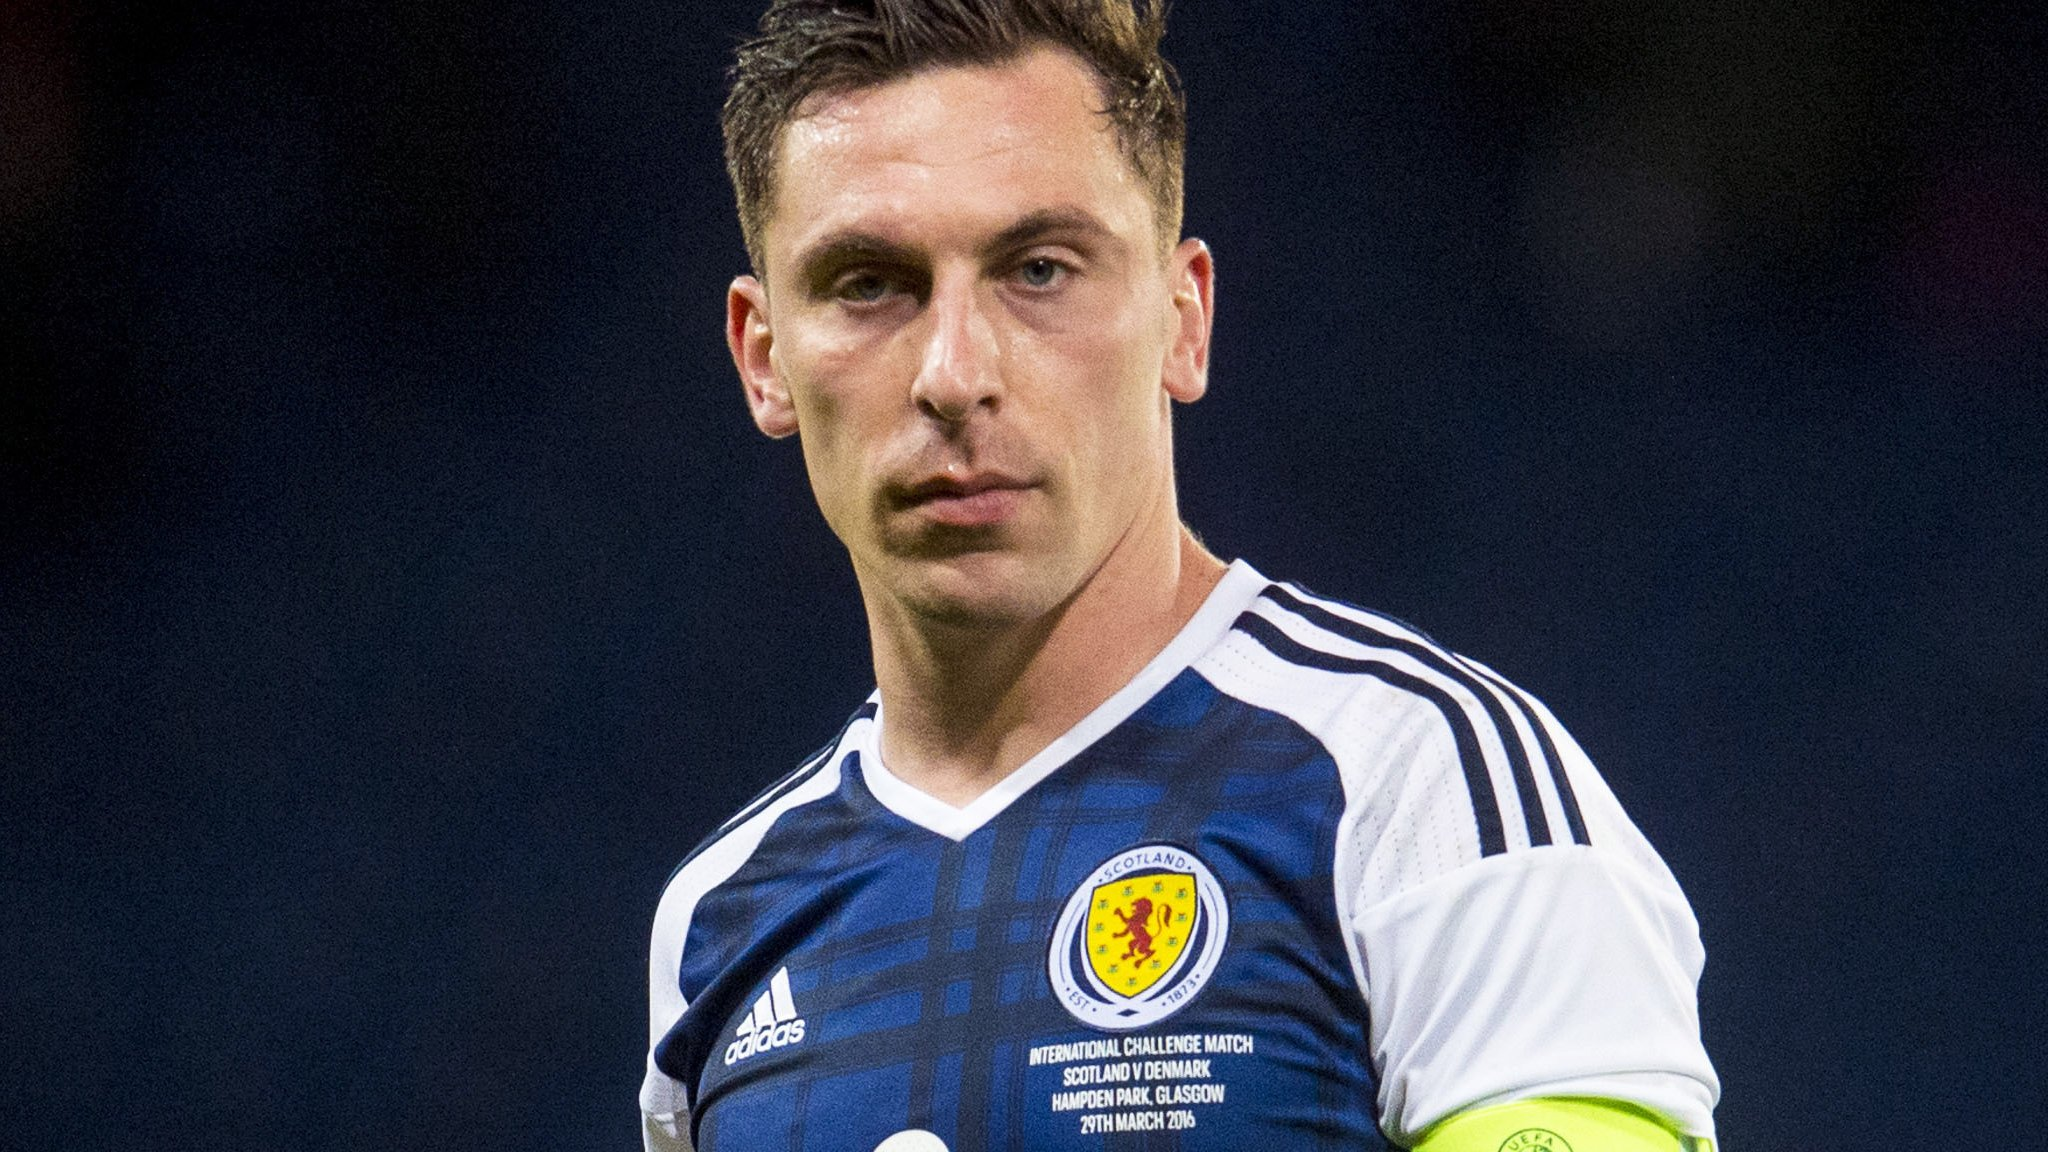 Brown ends Scotland retirement and could face England